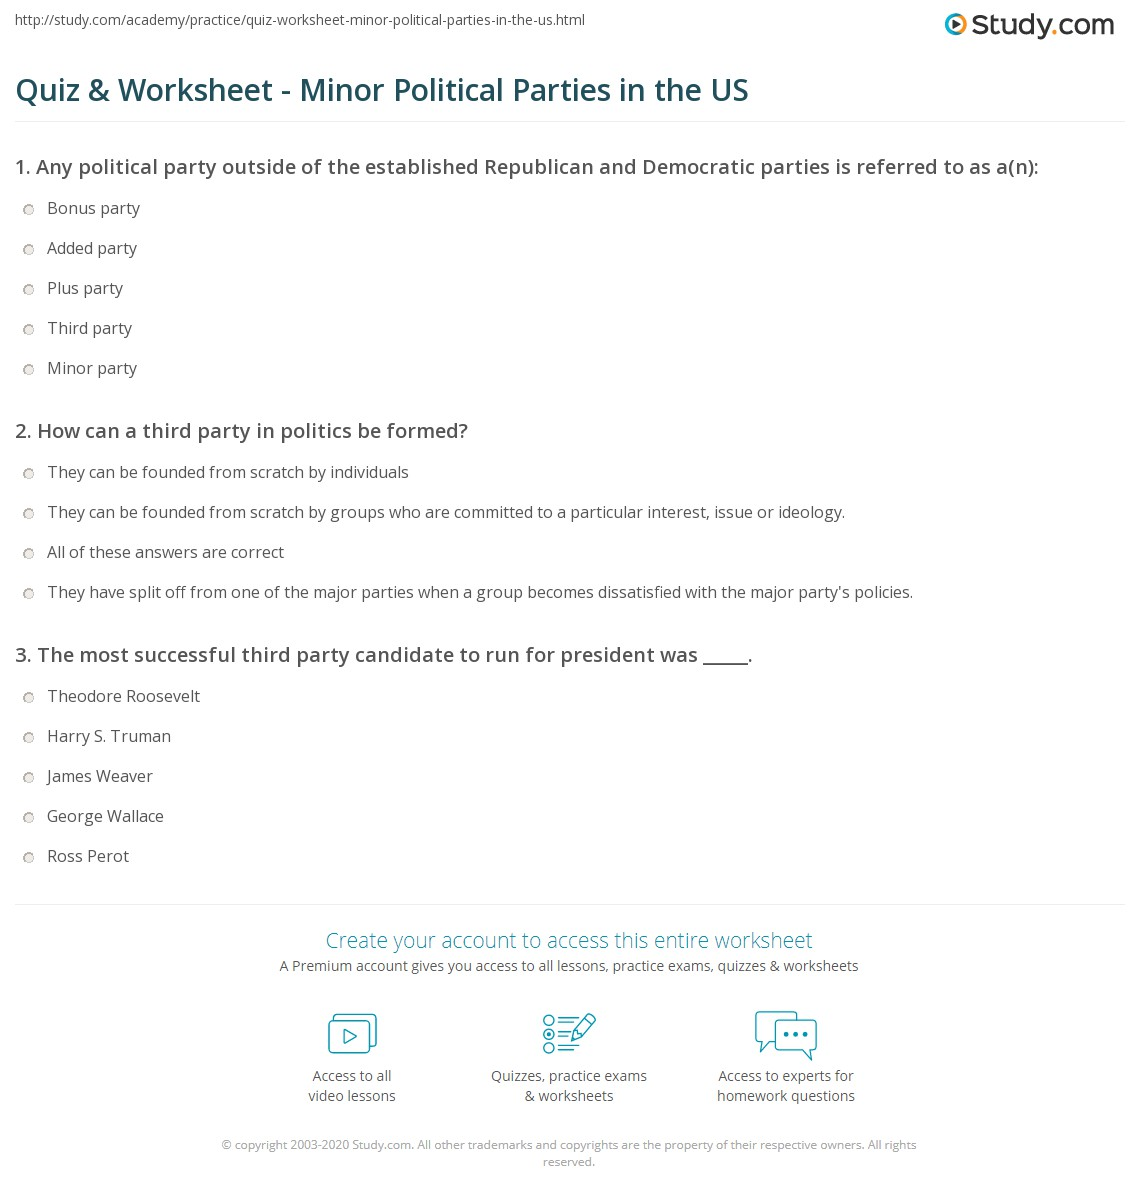 quiz & worksheet - minor political parties in the us | study